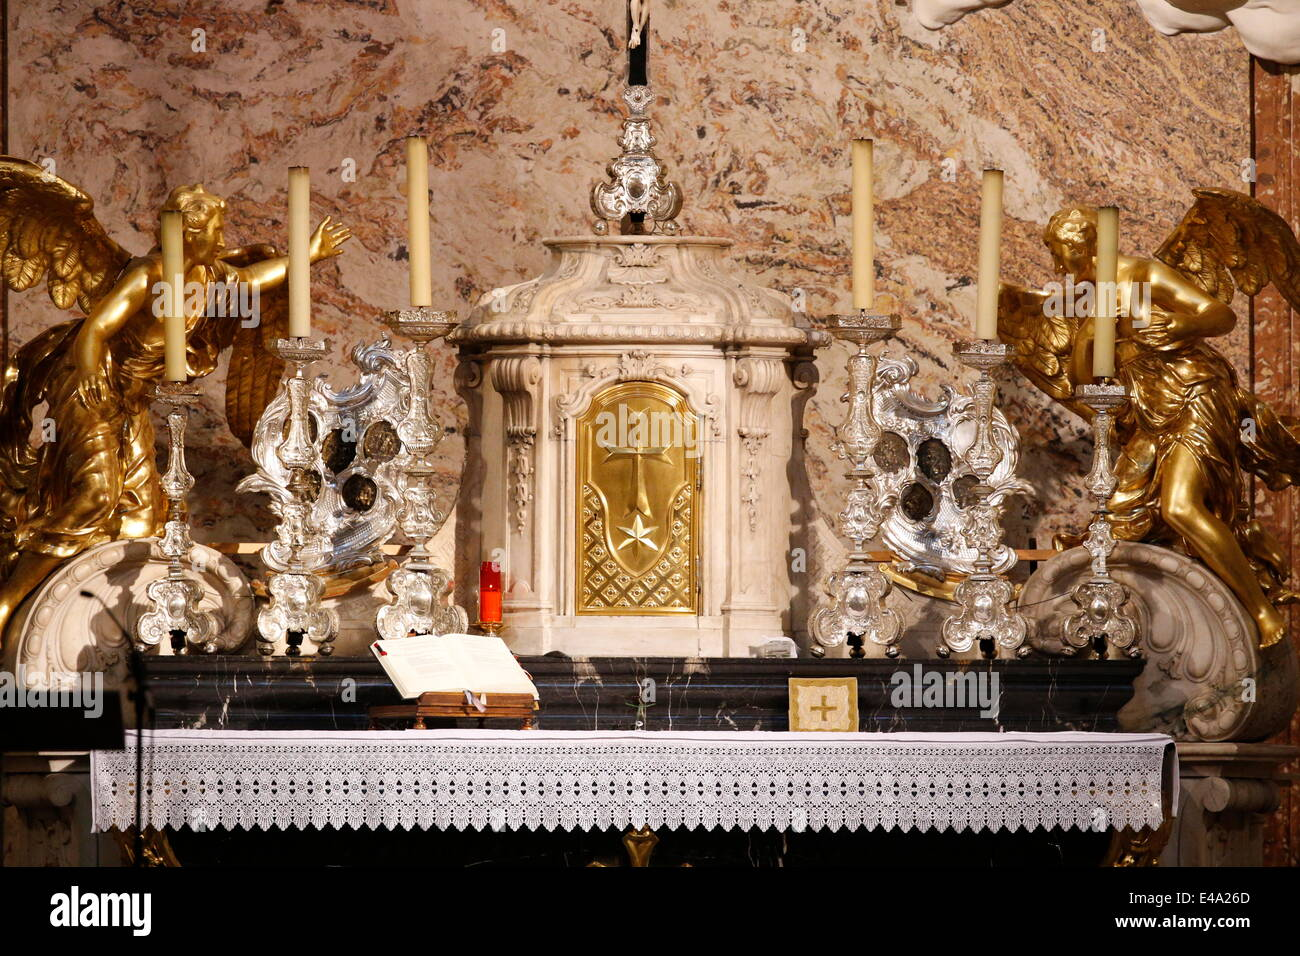 Altar and tabernacle, Karlskirche (St. Charles's Church), Vienna, Austria, Europe - Stock Image